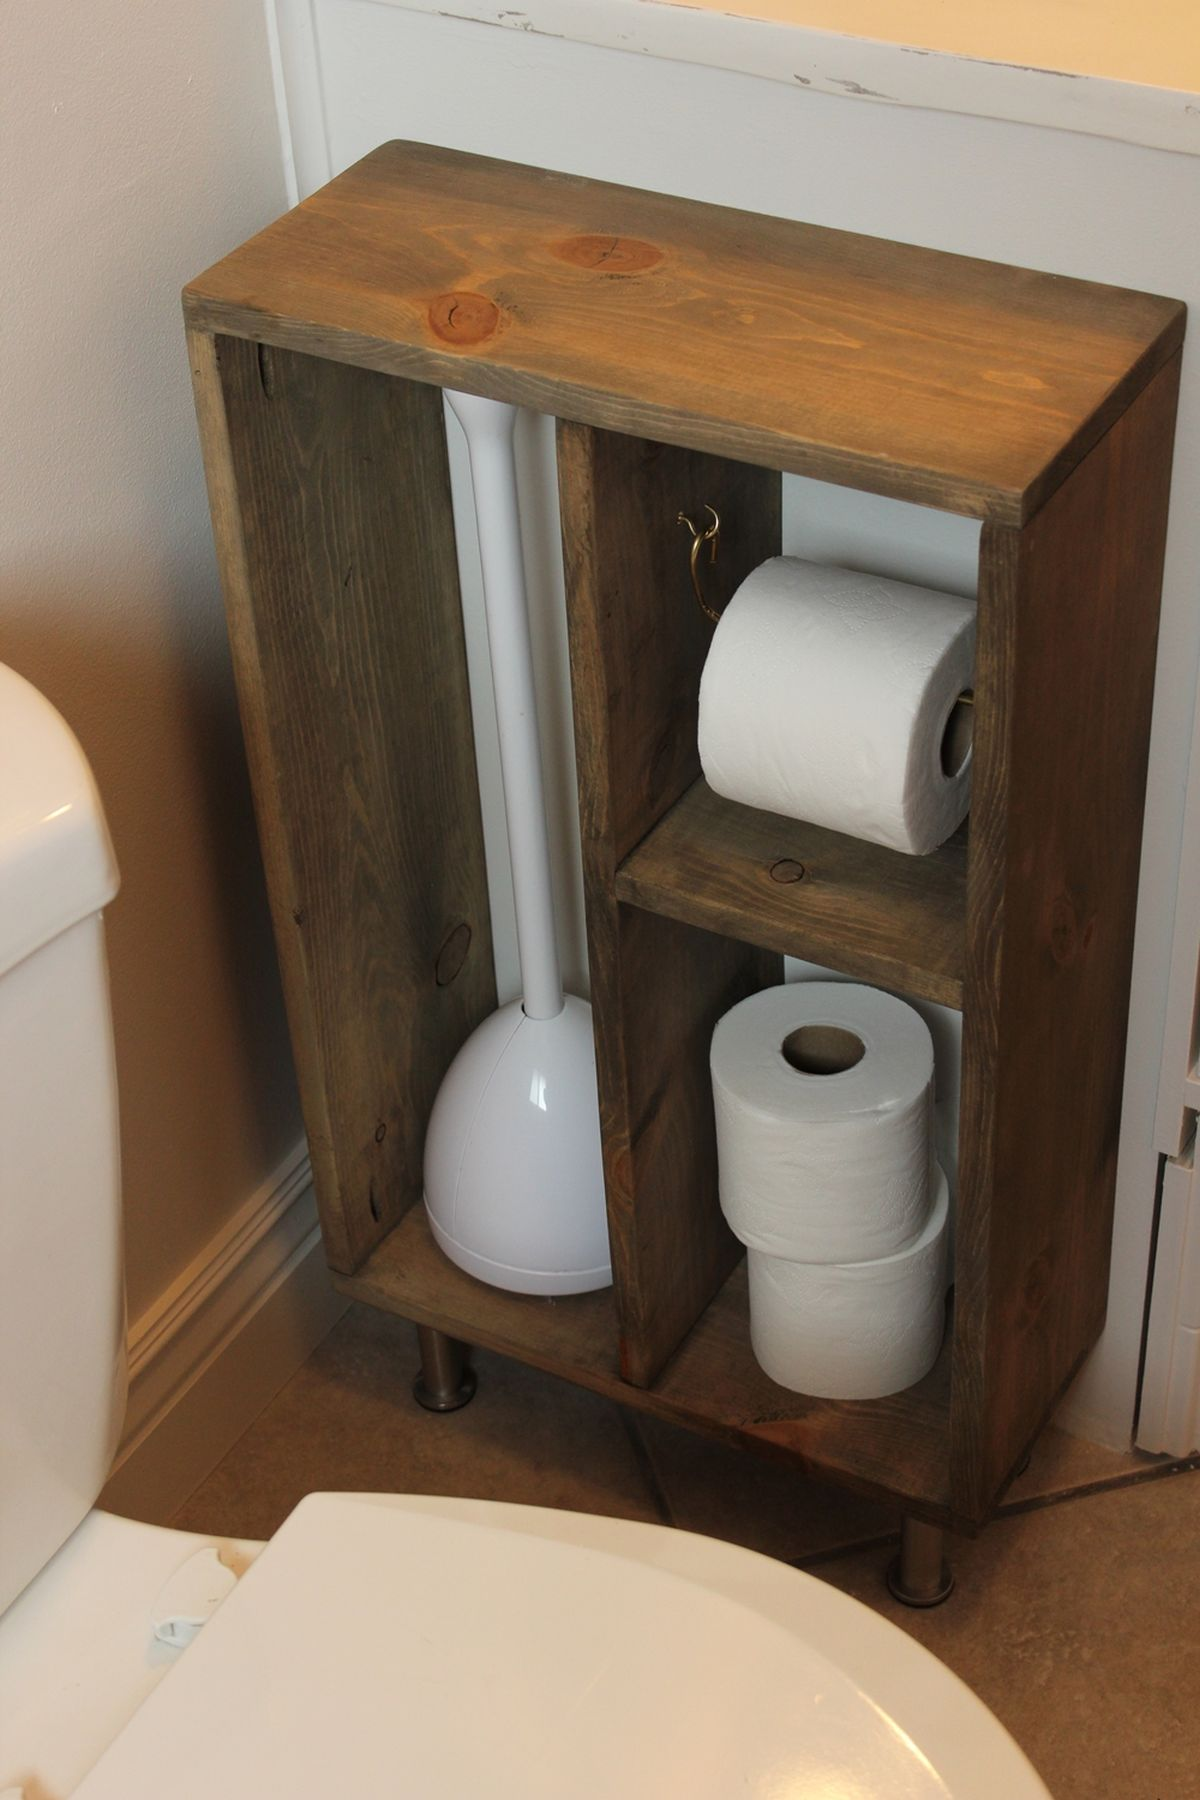 Standing wood storage for toilet paper